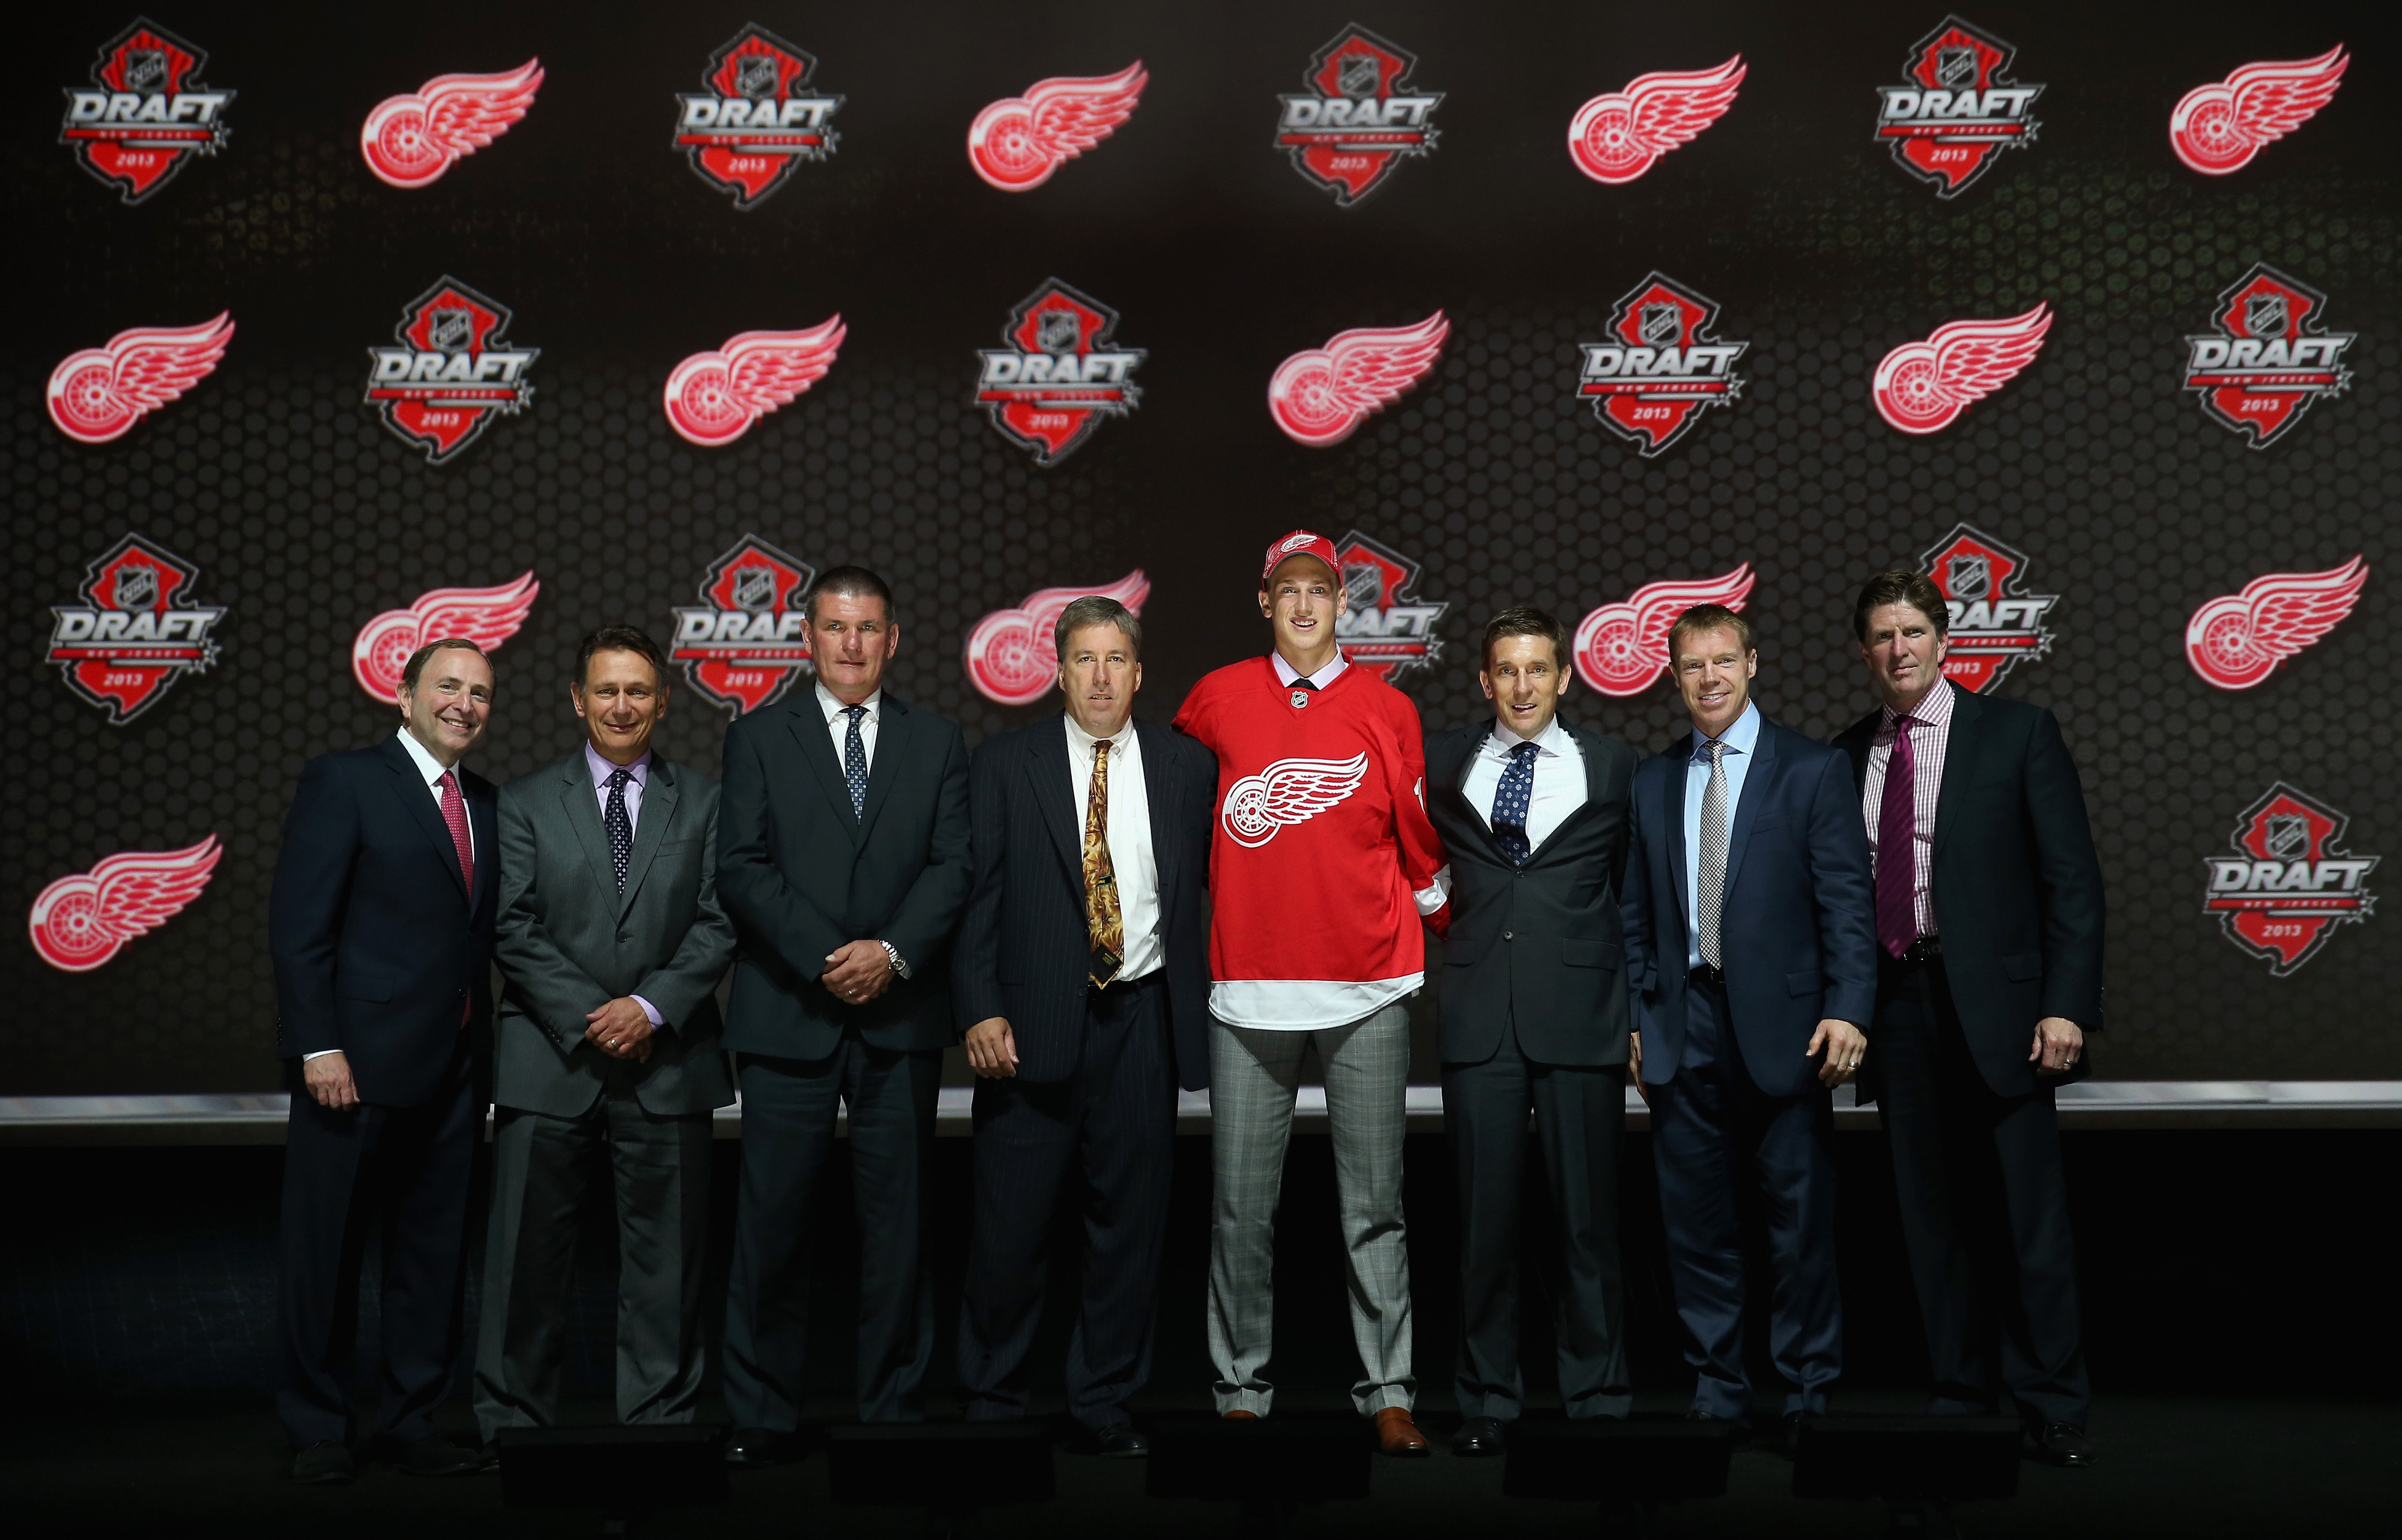 Honestly I couldn't find an OHL, WHL or QMJHL playoff photo that wasn't a month old and featuring eliminated teams. So here is Anthony Mantha.